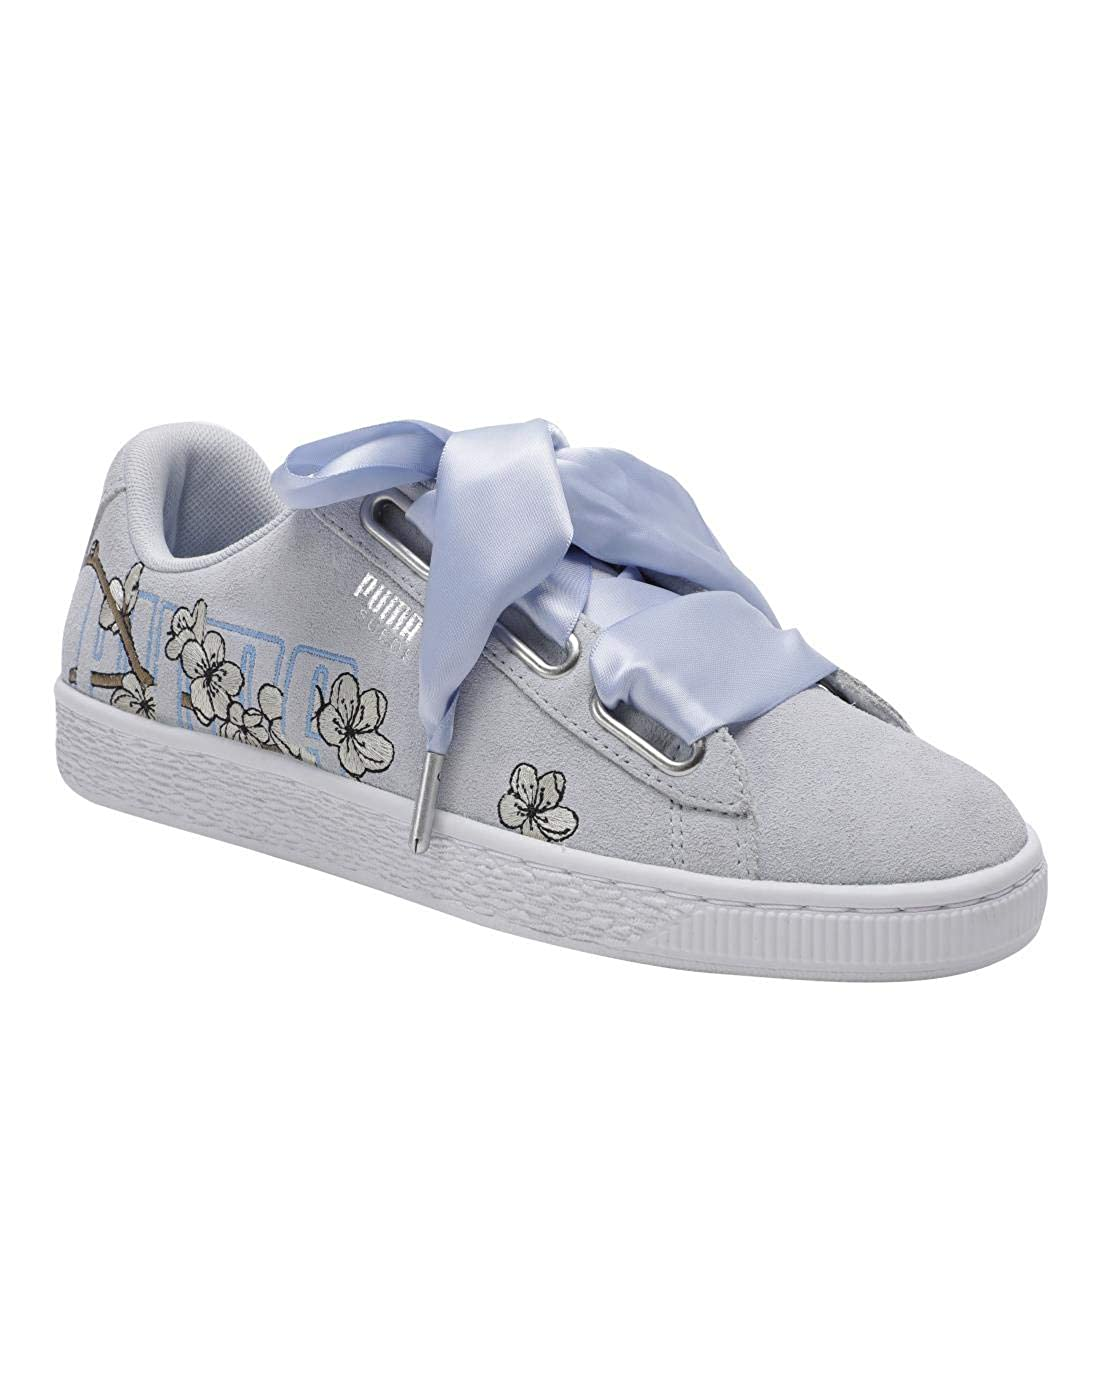 Puma Basket Heart Flowery Outlet Shop, UP TO 68% OFF